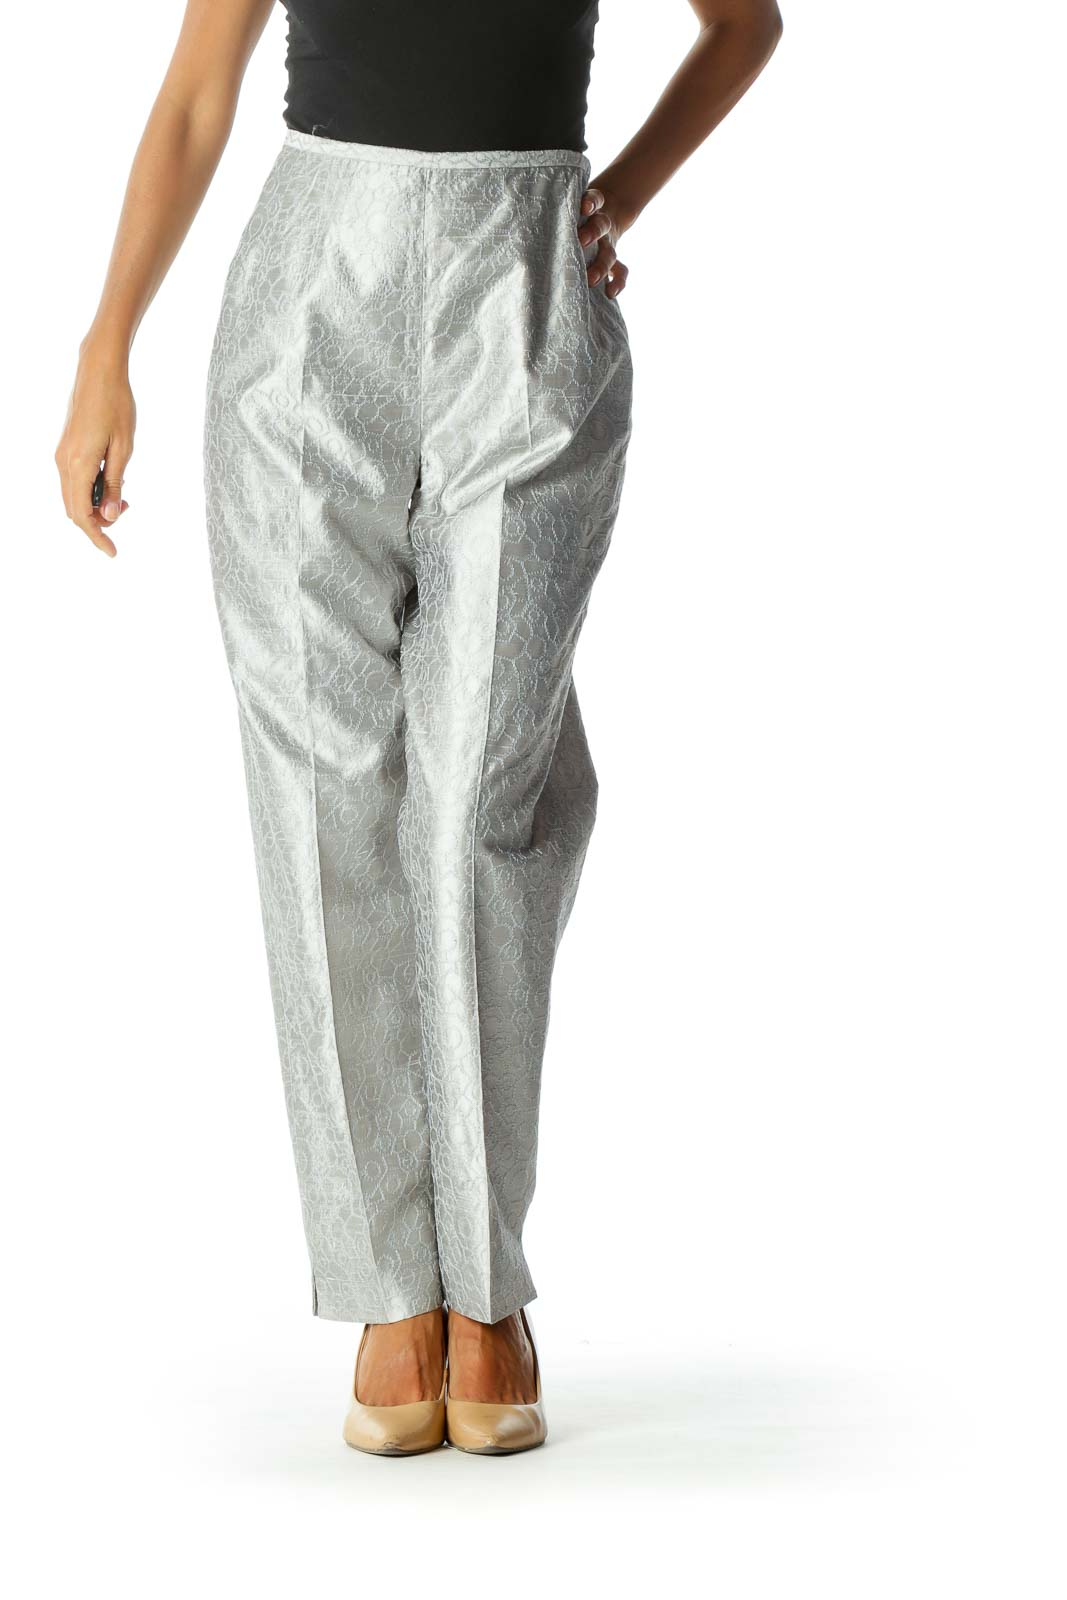 Silver Textured Pattern Tapered Side-Zipper Pants Front